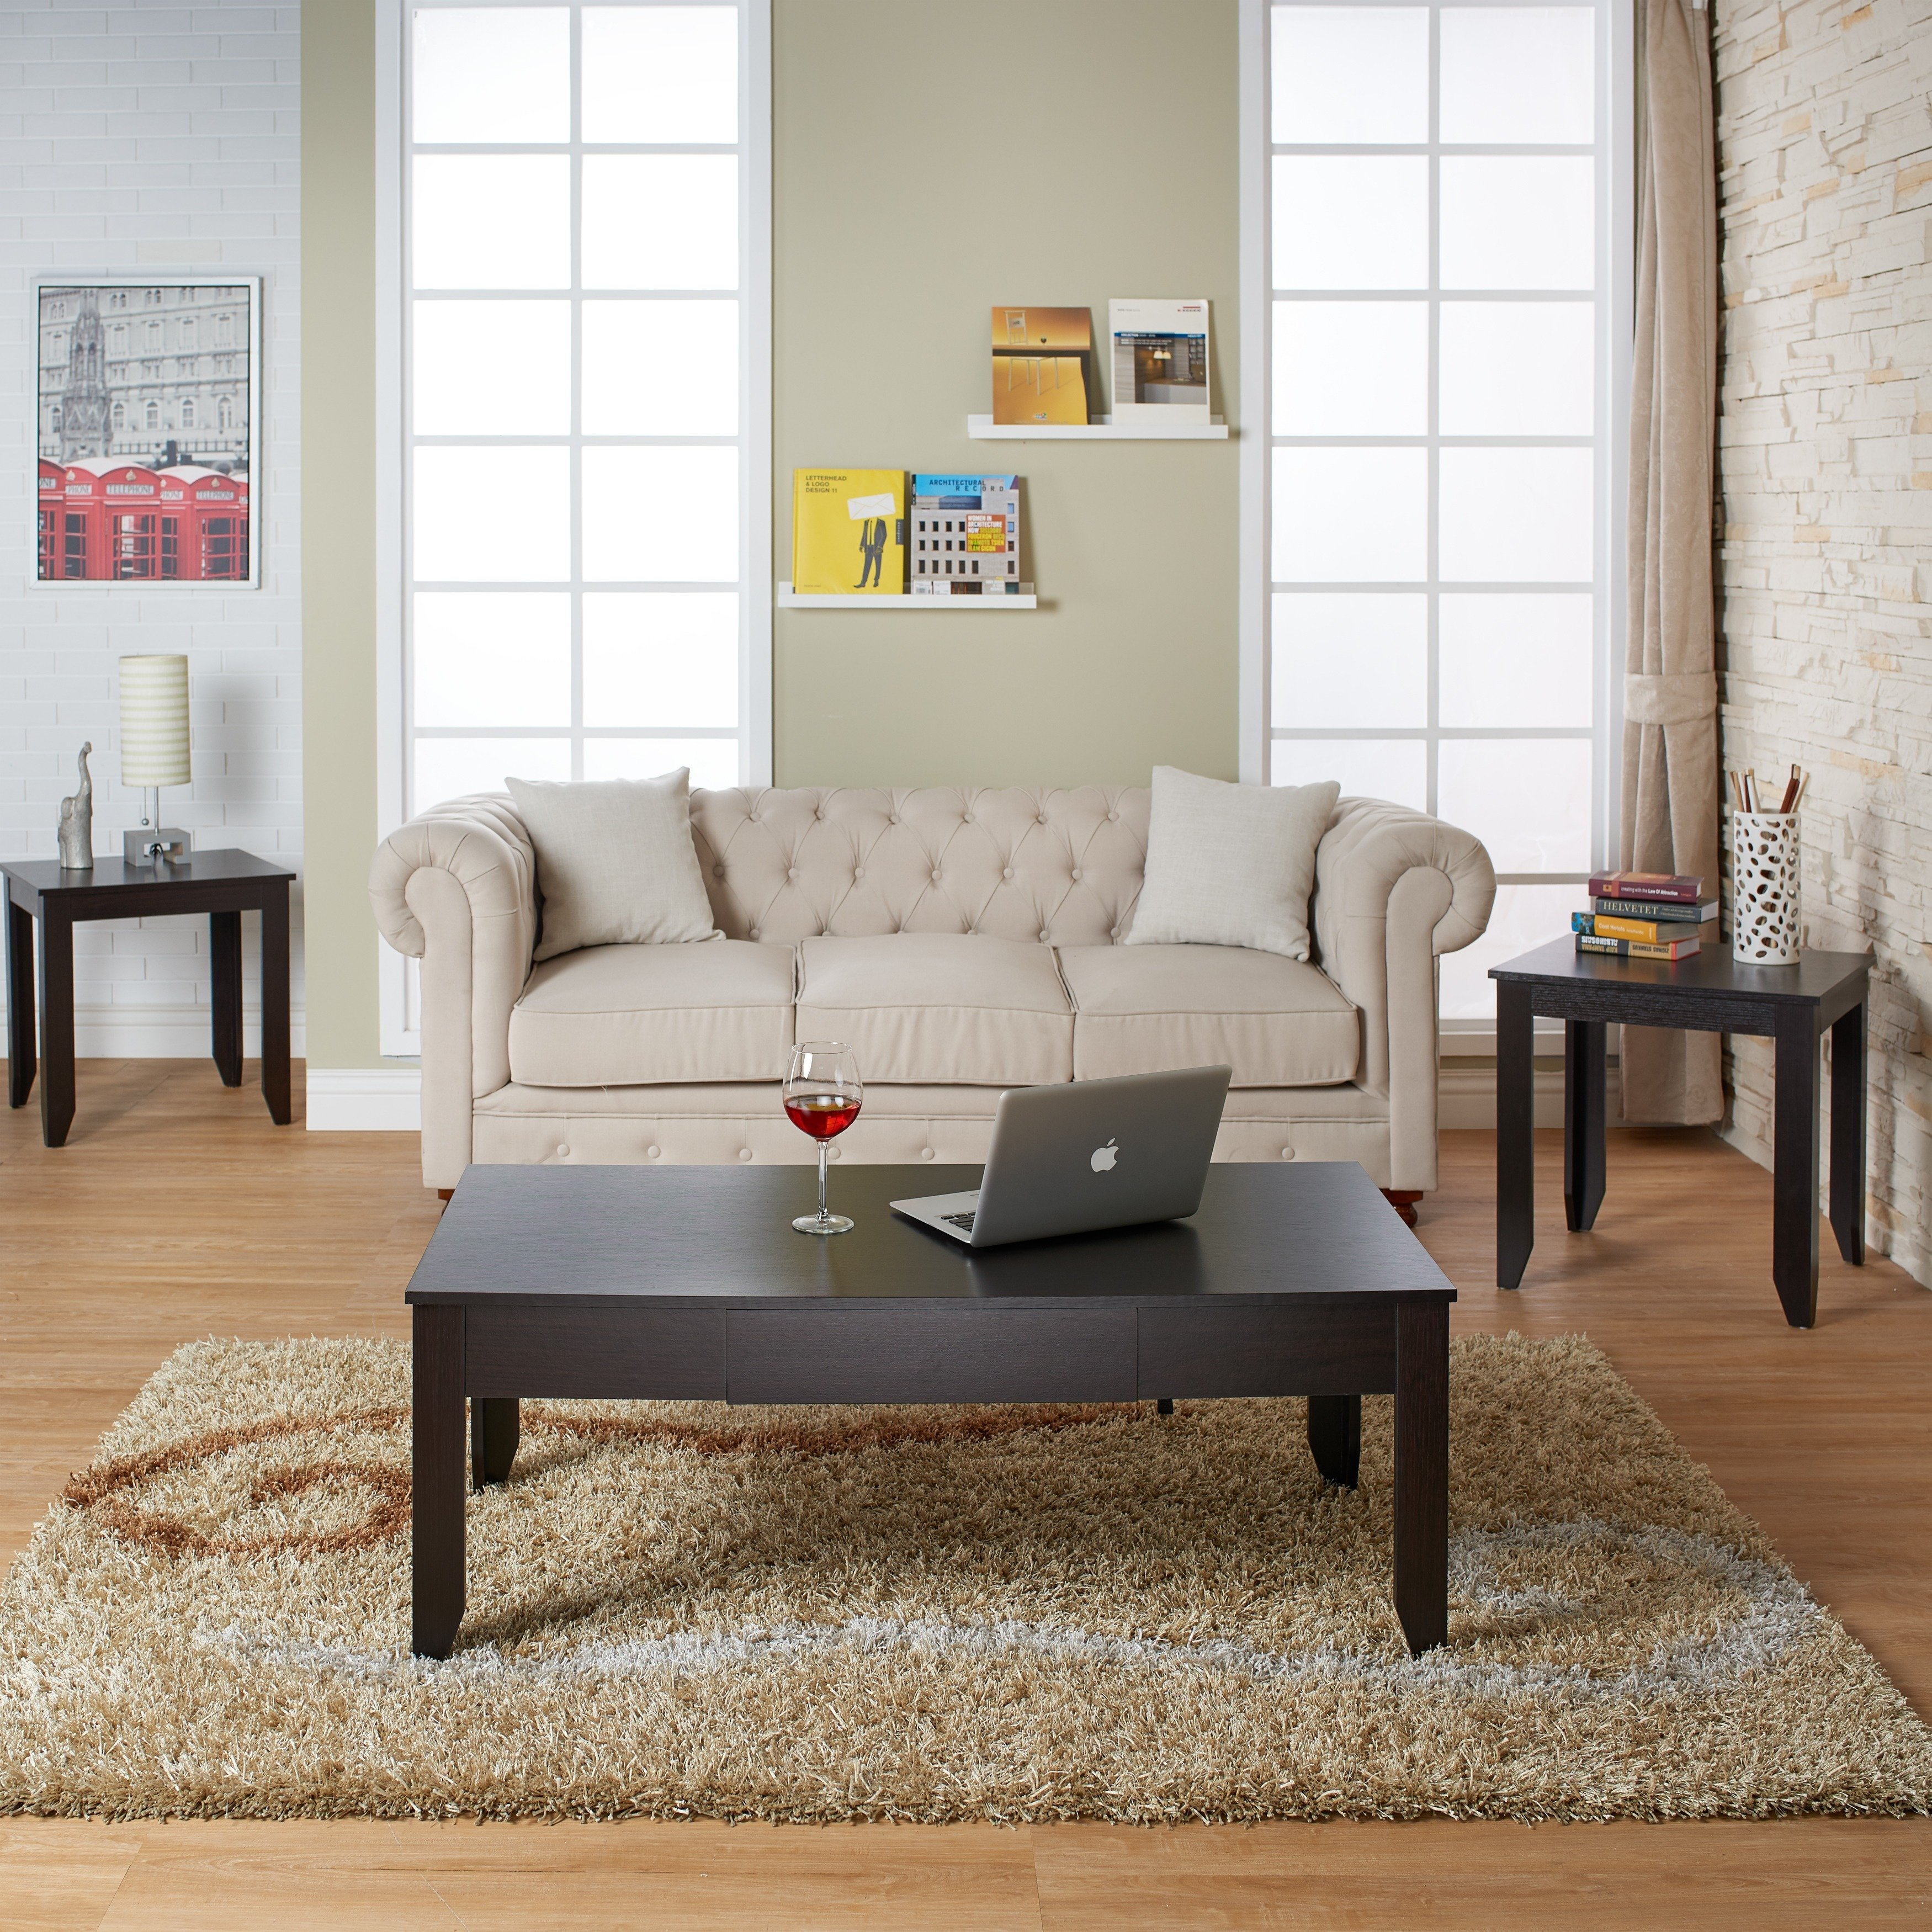 furniture america pelise piece contemporary cappuccino accent table set living room sets free shipping today home office edmonton very small side tiffany tree lamp shades plus